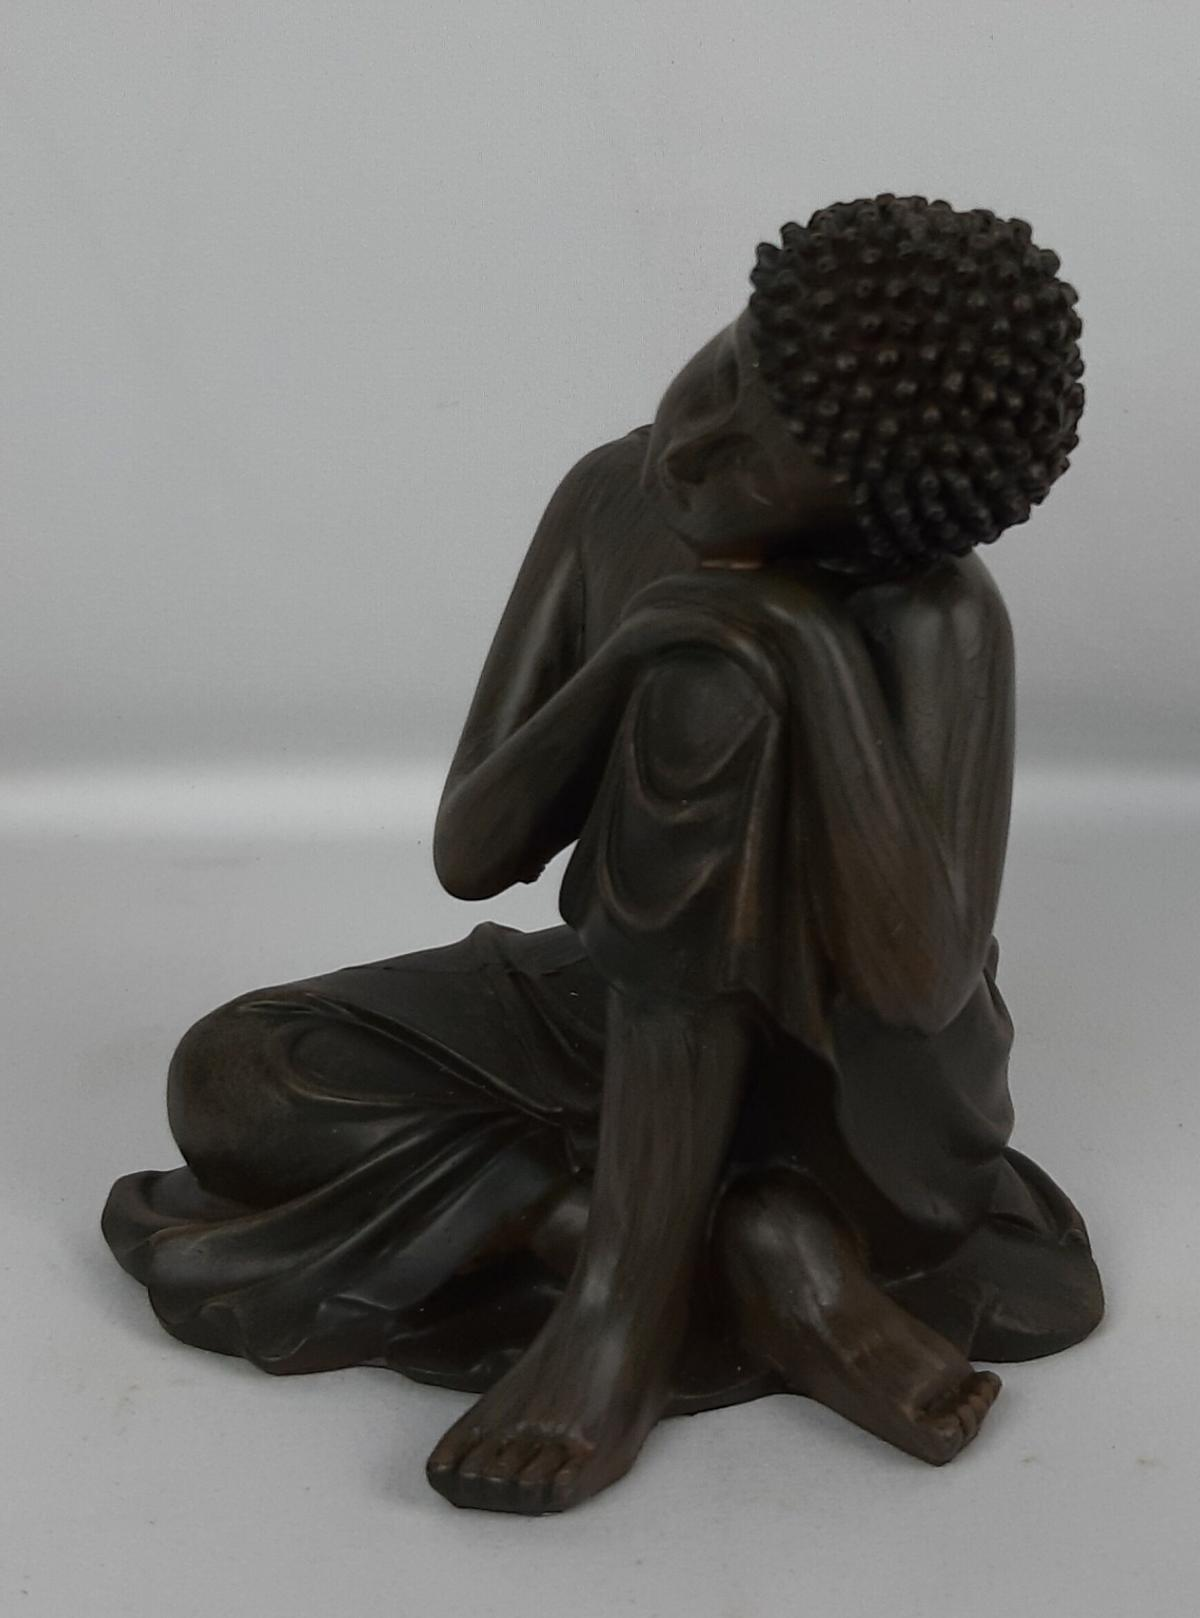 The story goes that Siddhartha Gautama left a life of luxury in pursuit of enlightenment. This statue depicts Buddha resting his head onto his knee.  Material: Resin  Dimensions: Height 12 cm, Width 11 cm  Weight: 280 g